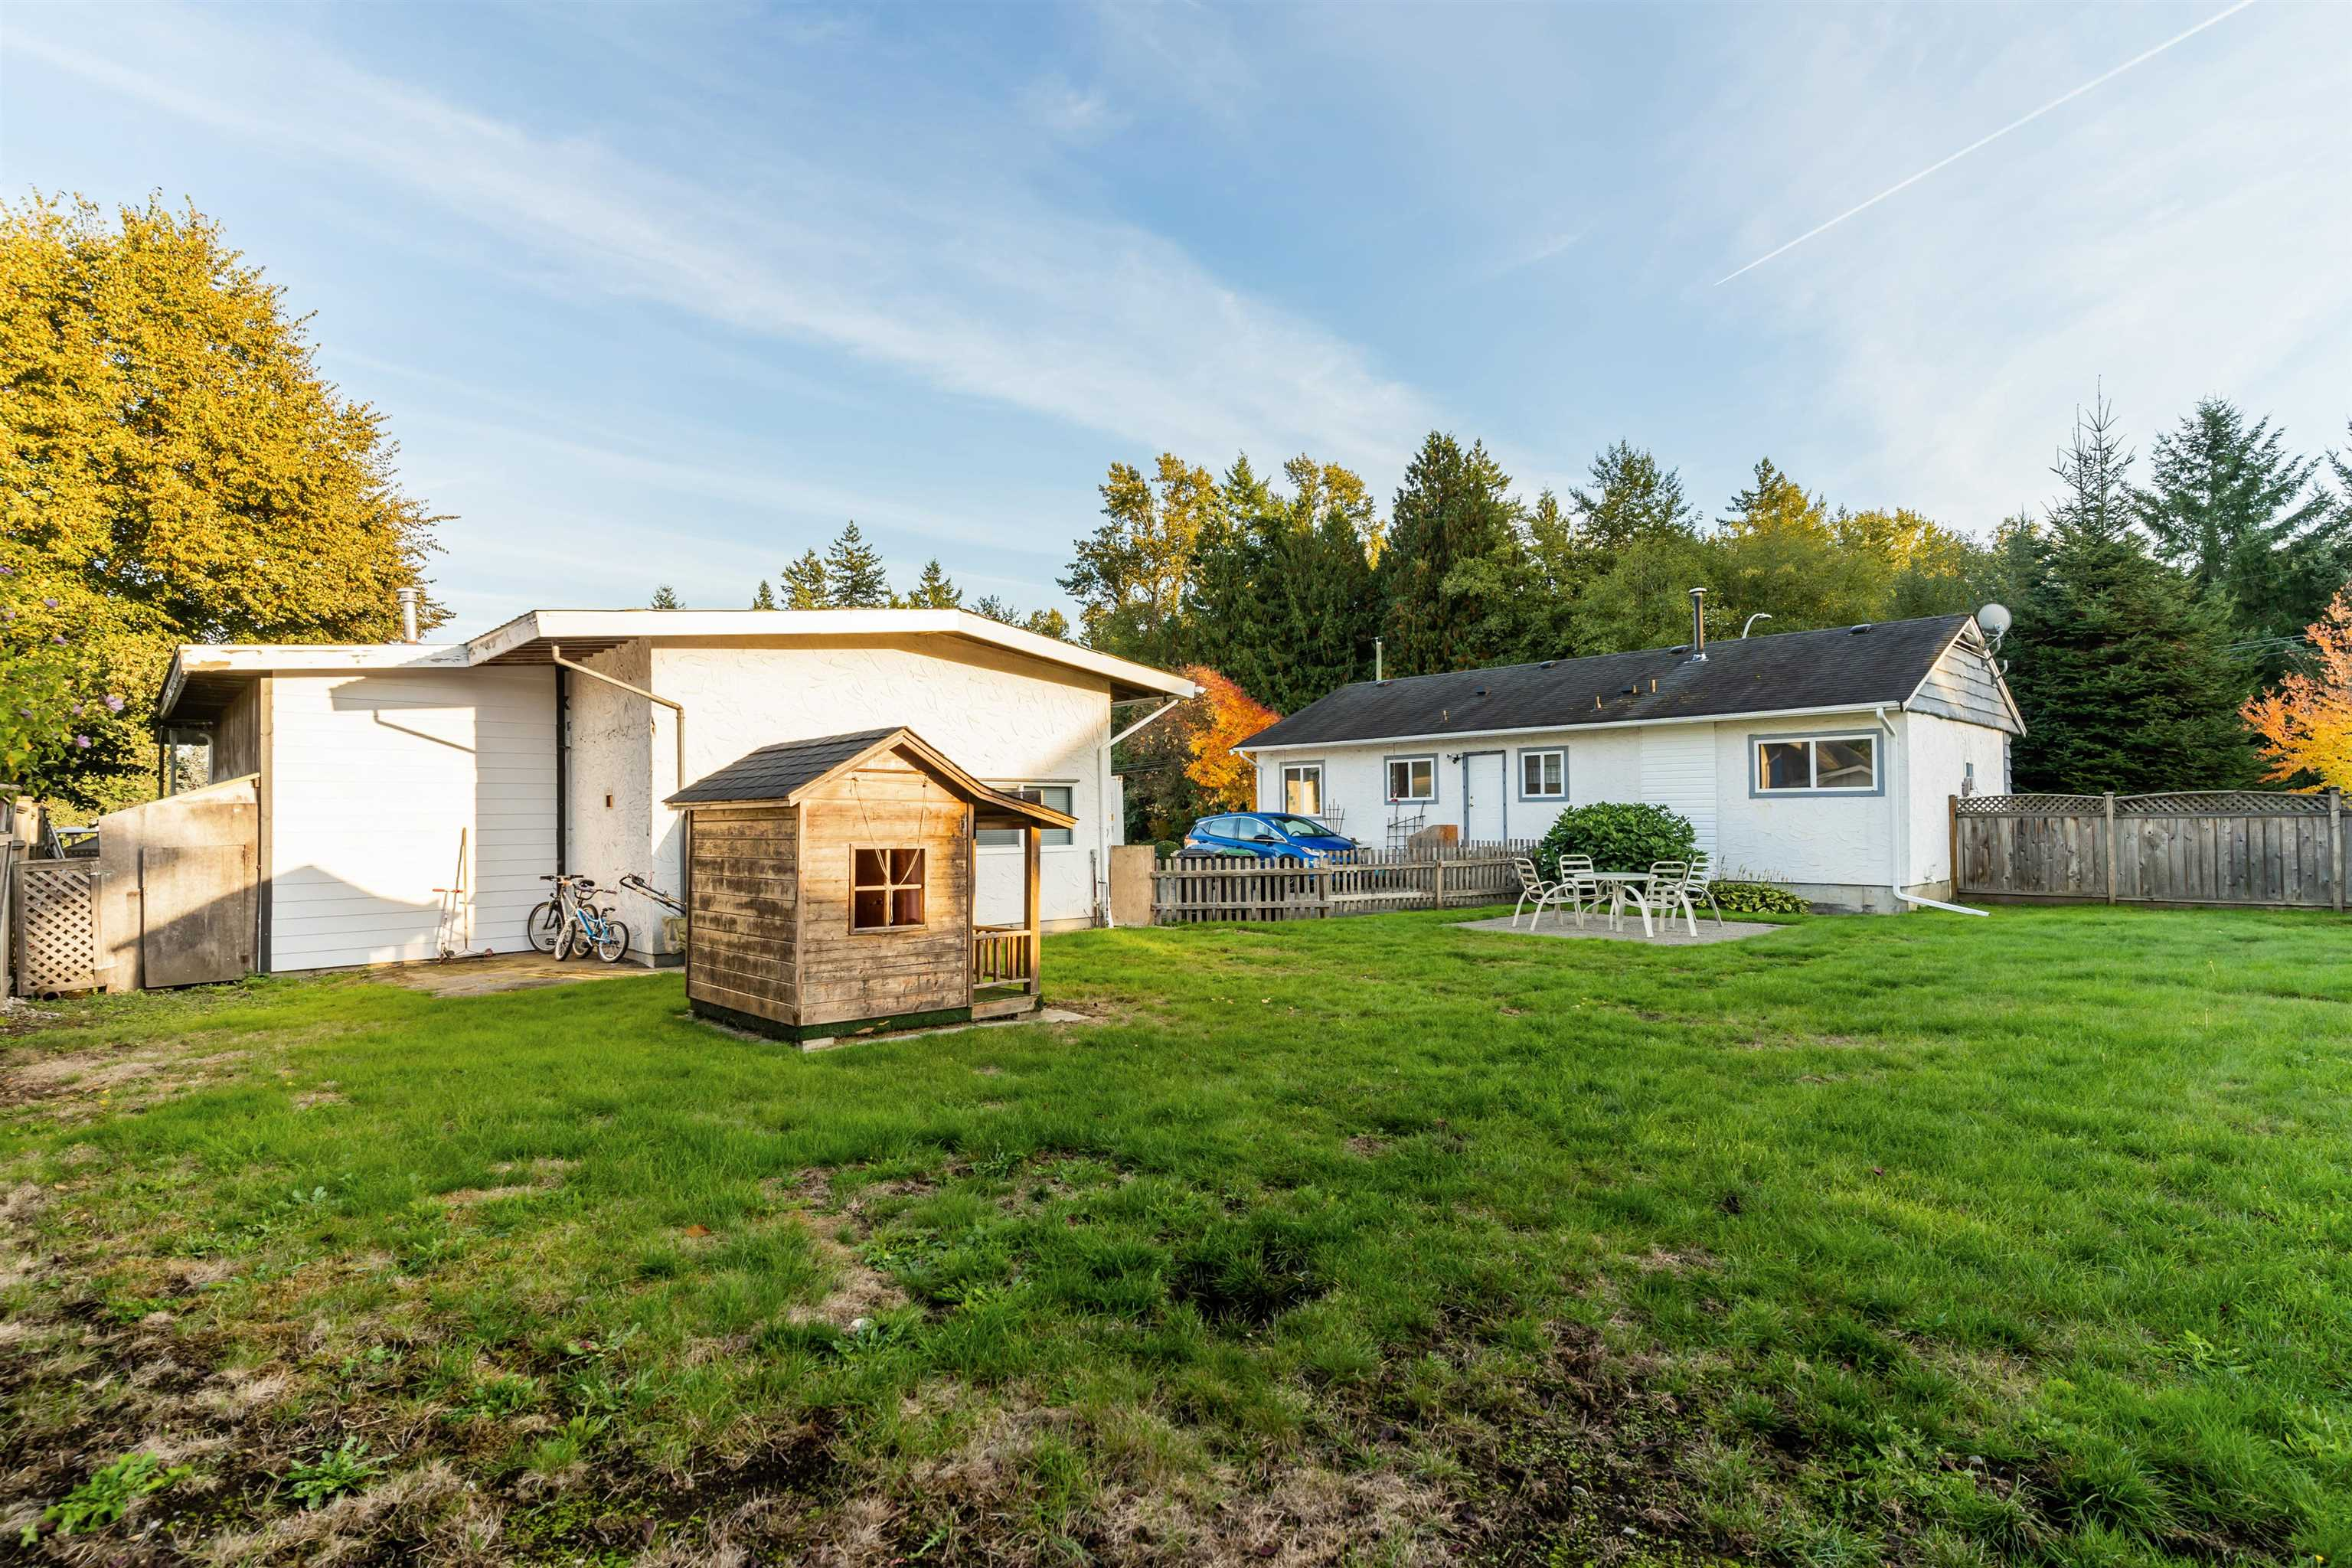 16527 84 AVENUE - Fleetwood Tynehead House/Single Family for sale, 2 Bedrooms (R2625496) - #26